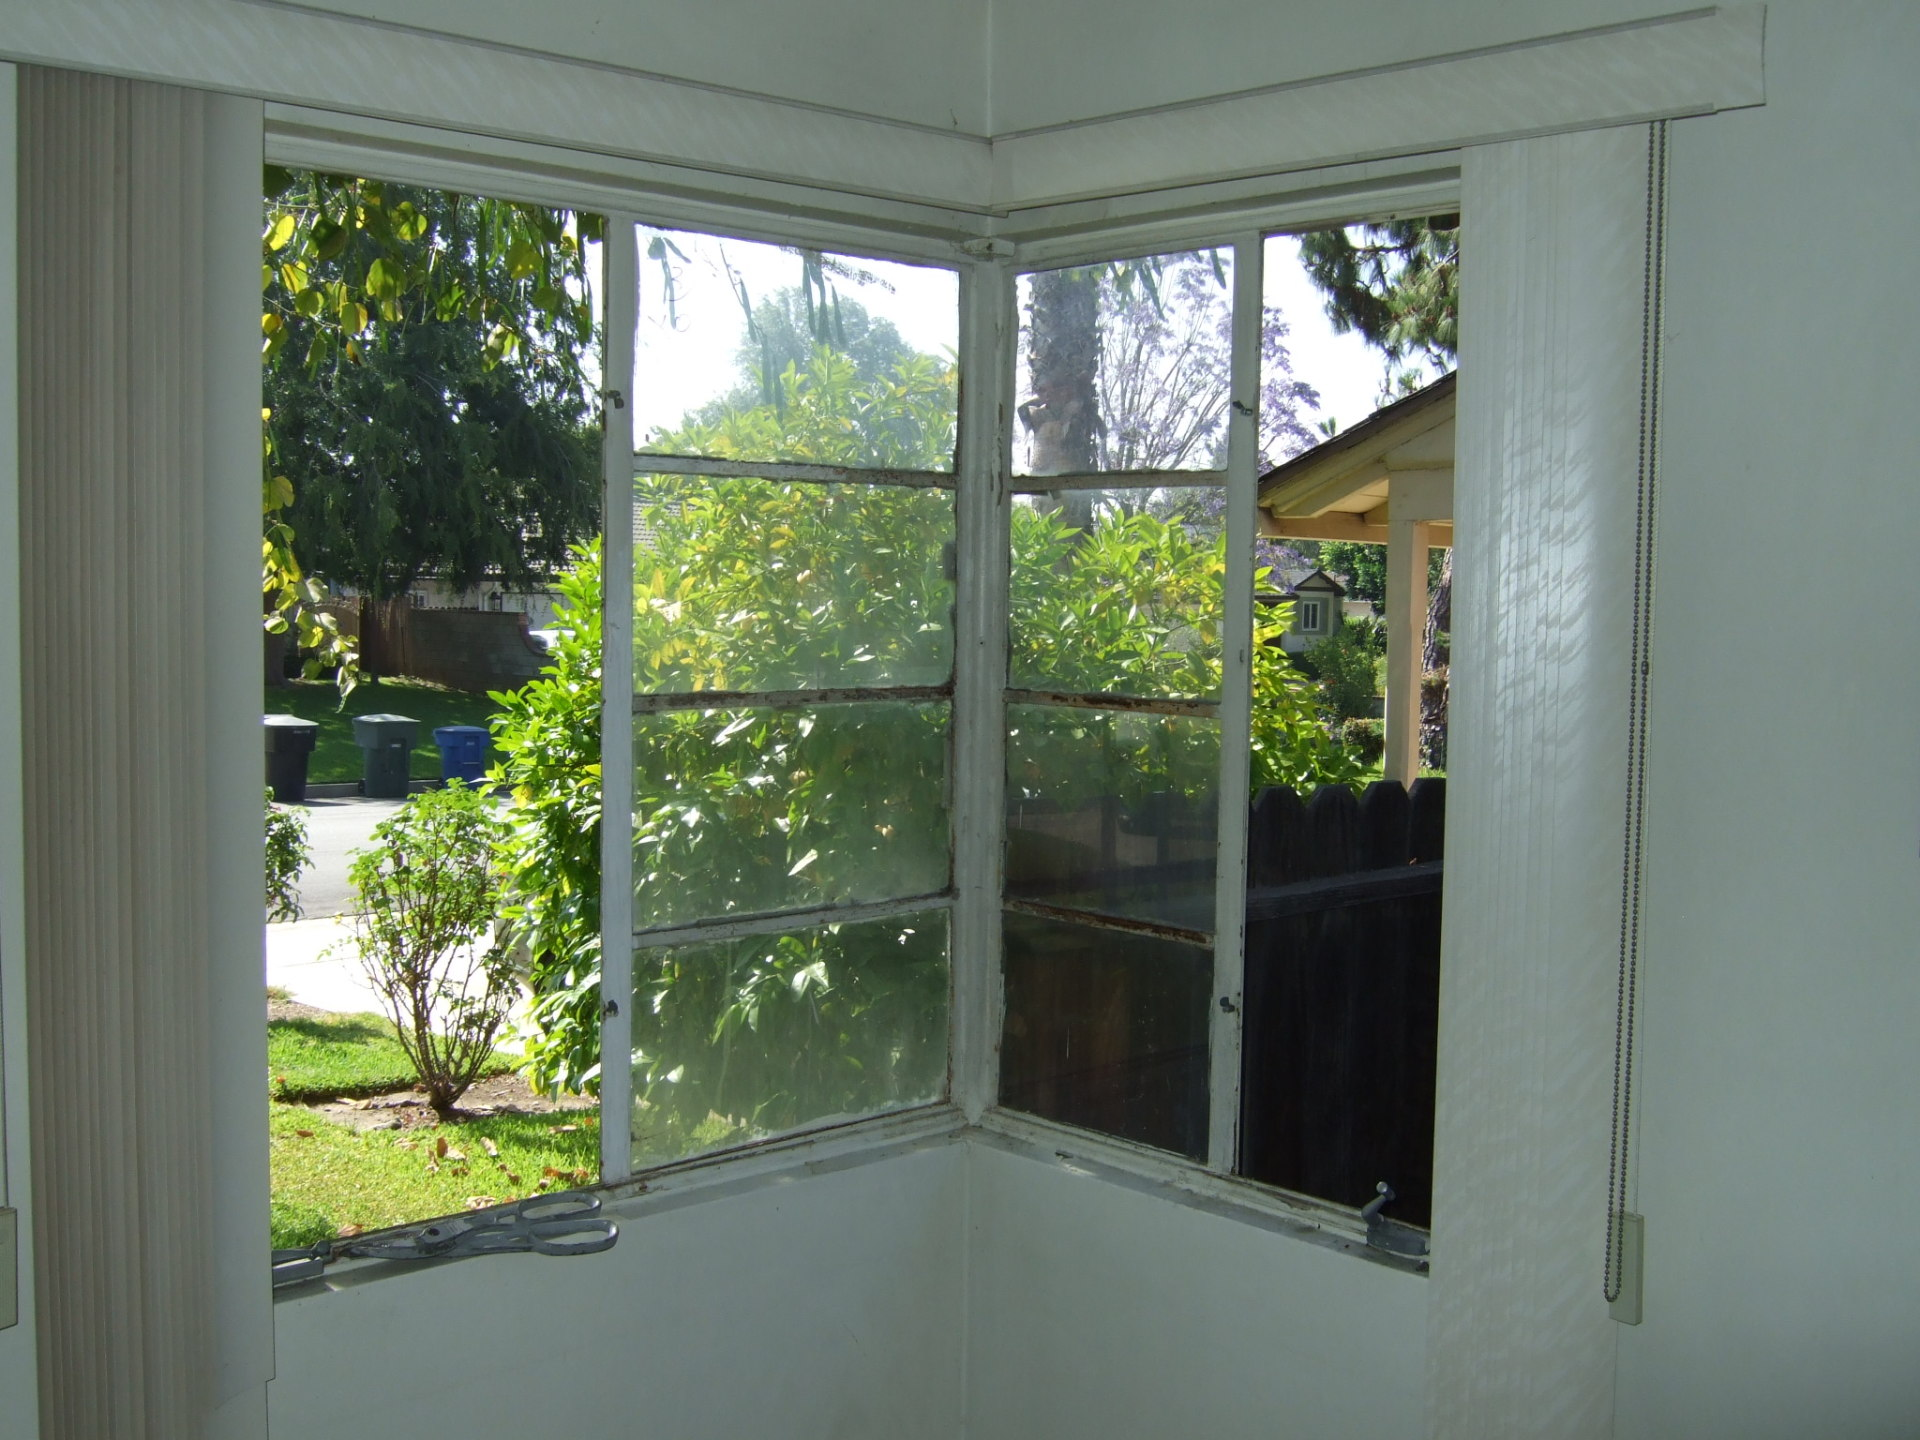 Corner Window Before (Inside View)